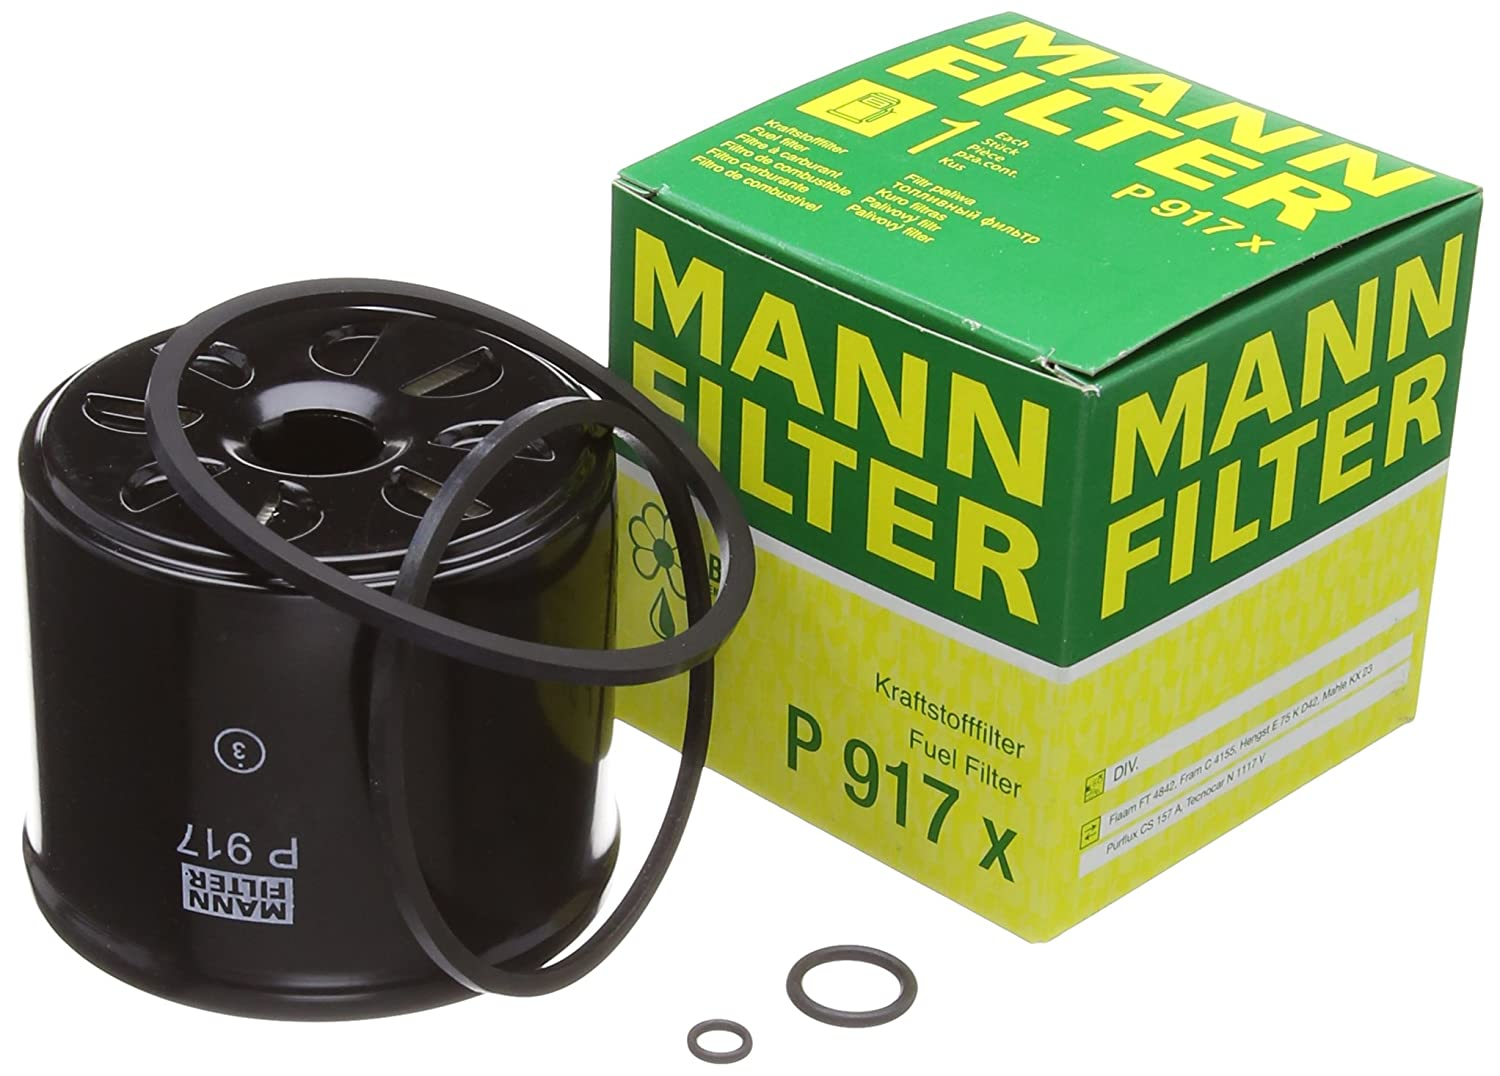 Mann Filter P917x Fuel Car Motorbike Volvo 2003